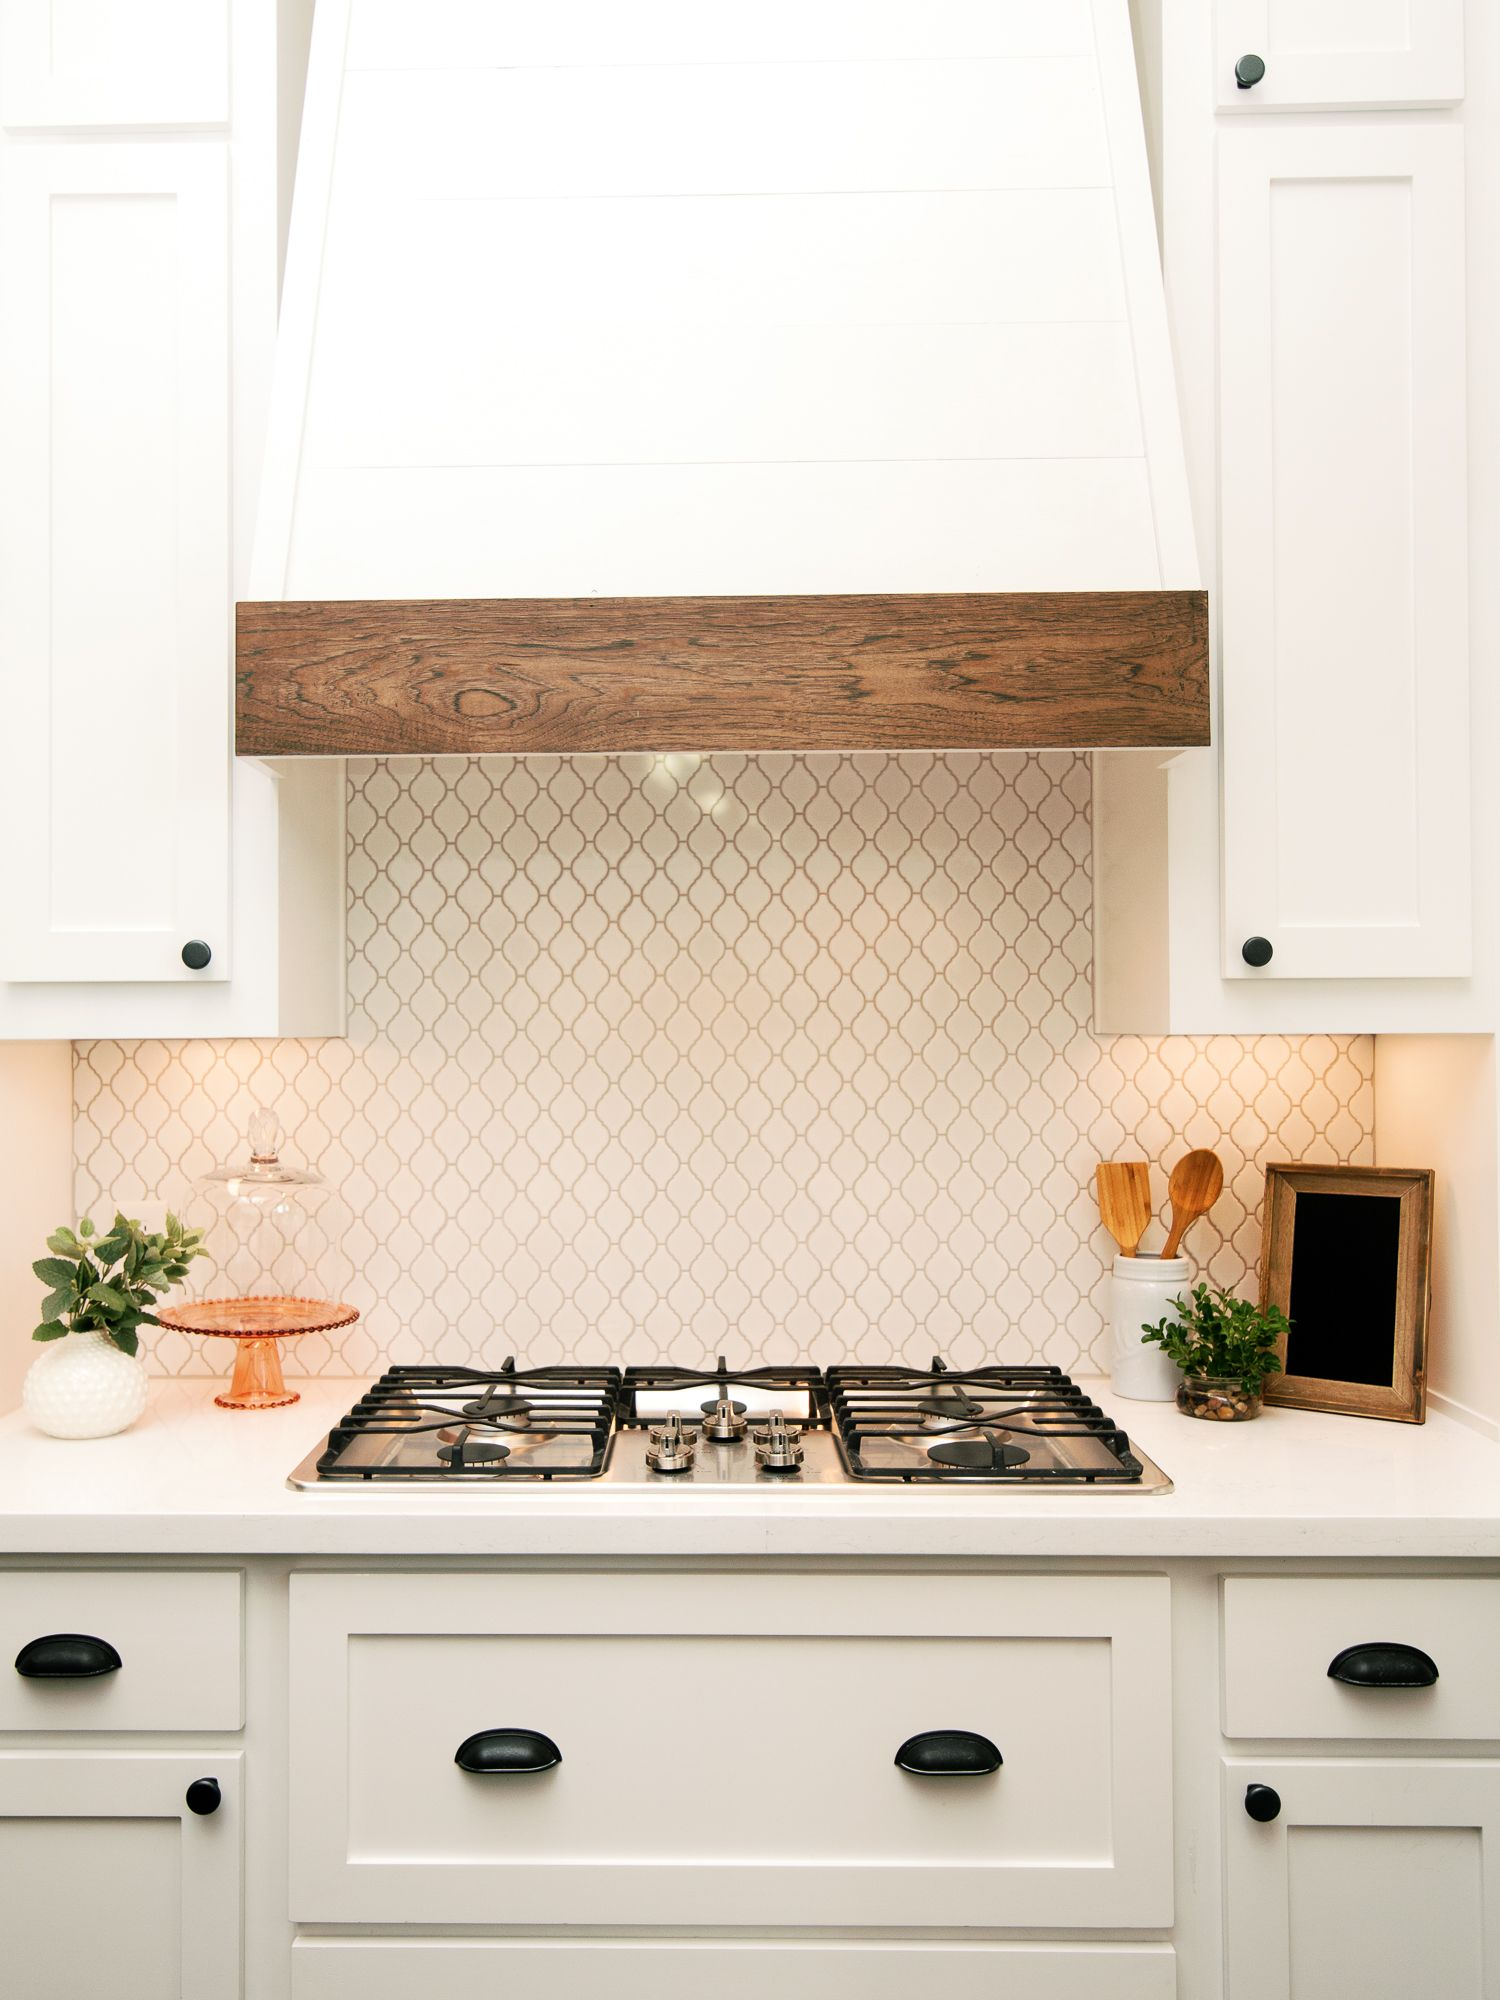 Custom White Vent Hood And Cabinetry Www Reece Homes Com Kitchen Remodel Kitchen Inspirations Kitchen Vent